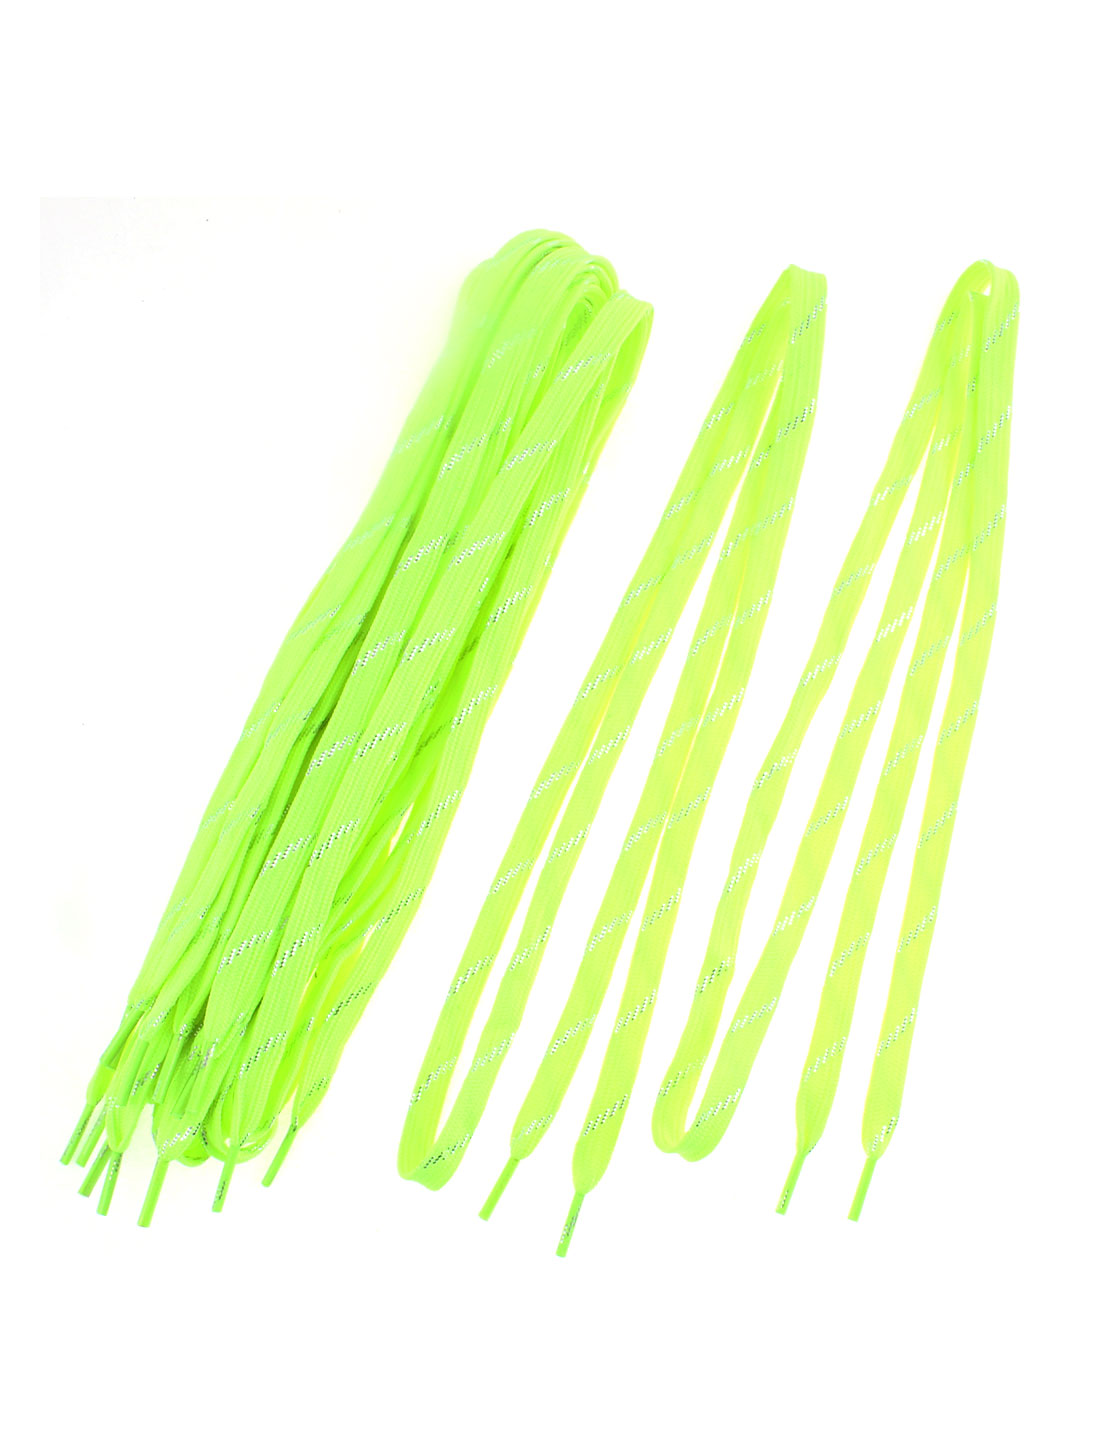 Sneakers Glittery Stripe Pattern Dual Layer Shoestring Shoelaces Fluorescent Yellow 5 Pairs